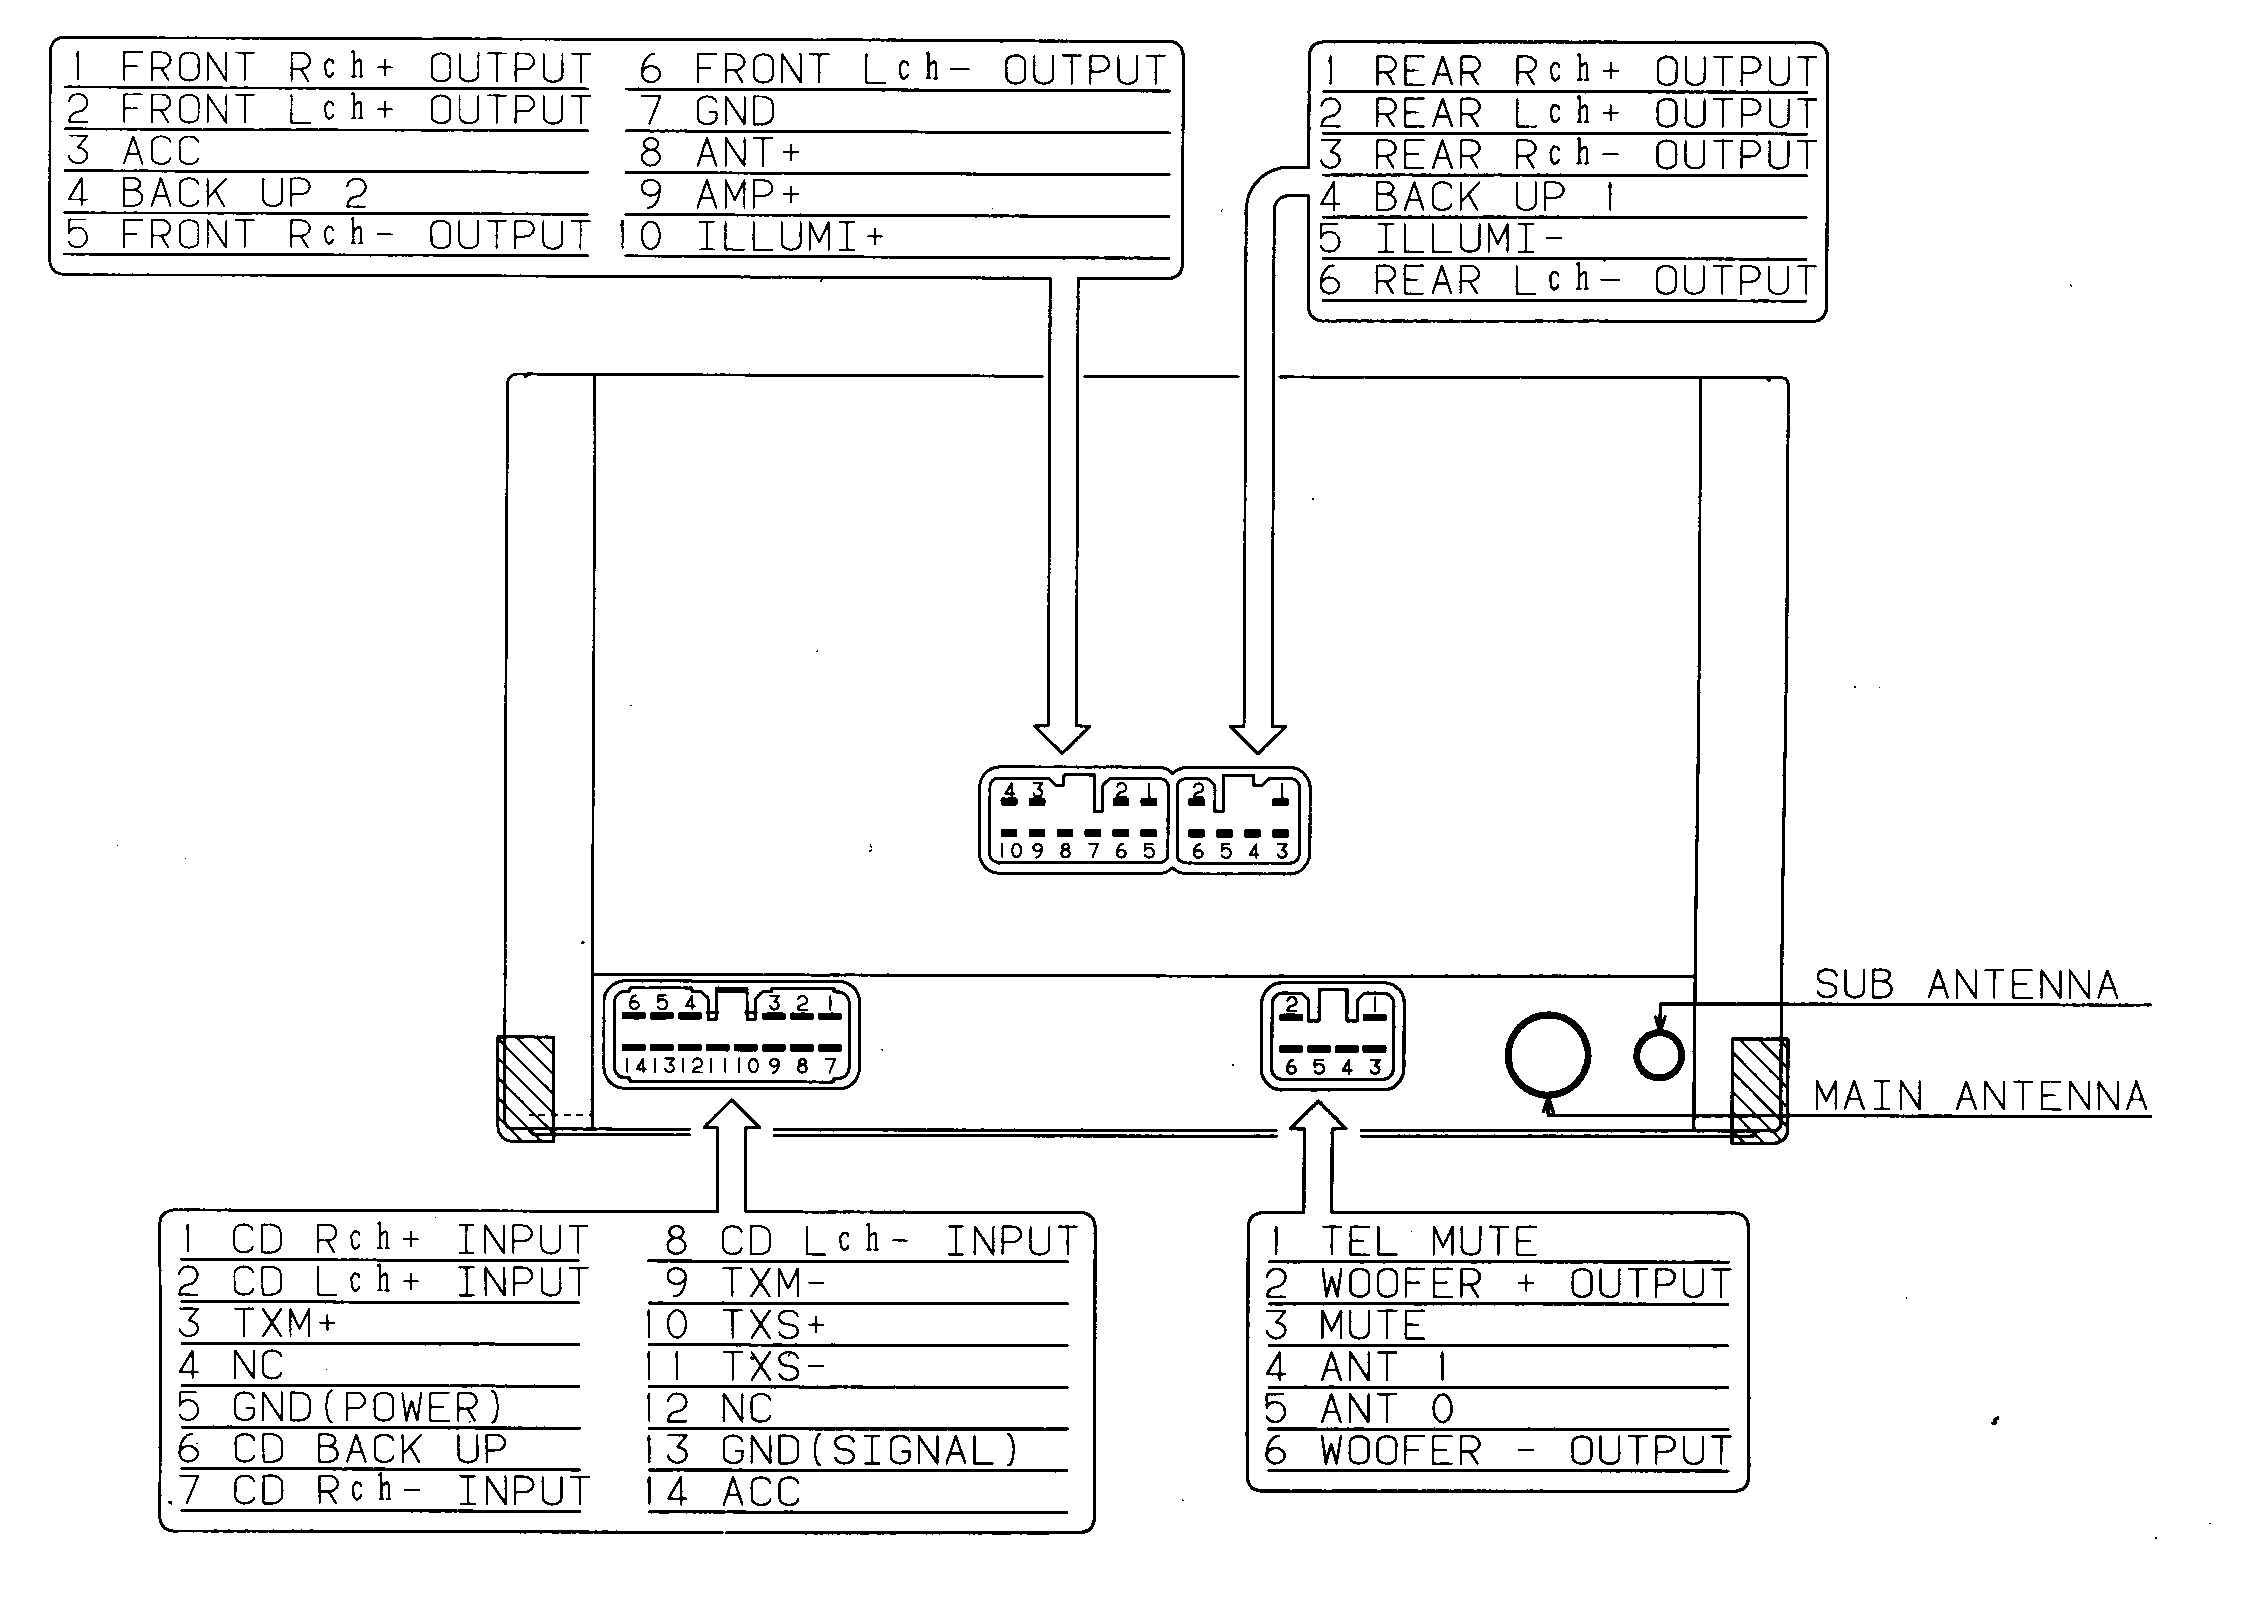 lexus car radio stereo audio wiring diagram autoradio connector lexus car stereo wiring diagram lexus 1814 pioneer dex mg9467zt